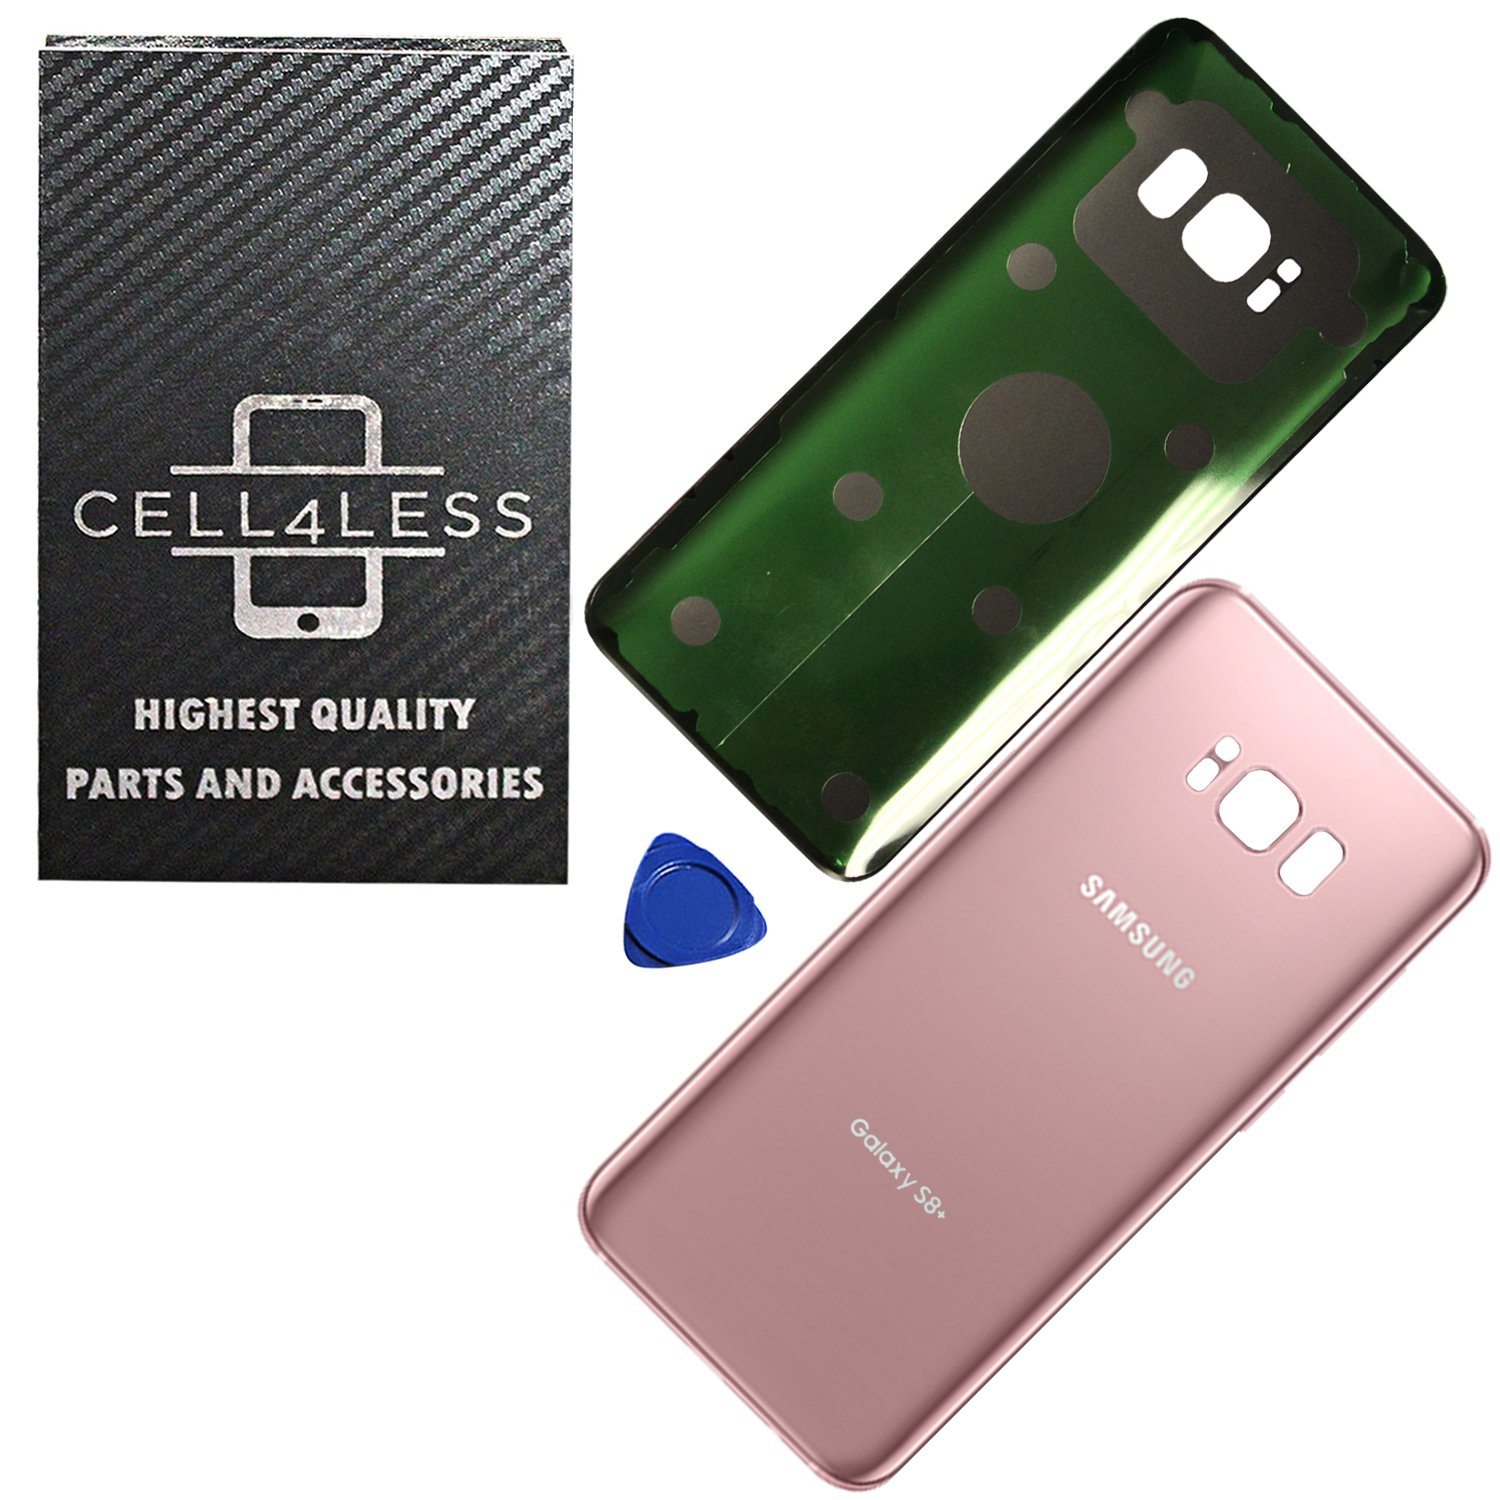 OEM Replacement CELL4LESS Replacement Back Glass Cover Back Battery Door w//Pre-Installed Adhesive for Samsung Galaxy S8+ Plus OEM Arctic Silver All Models G955 All Carriers- 2 Logo